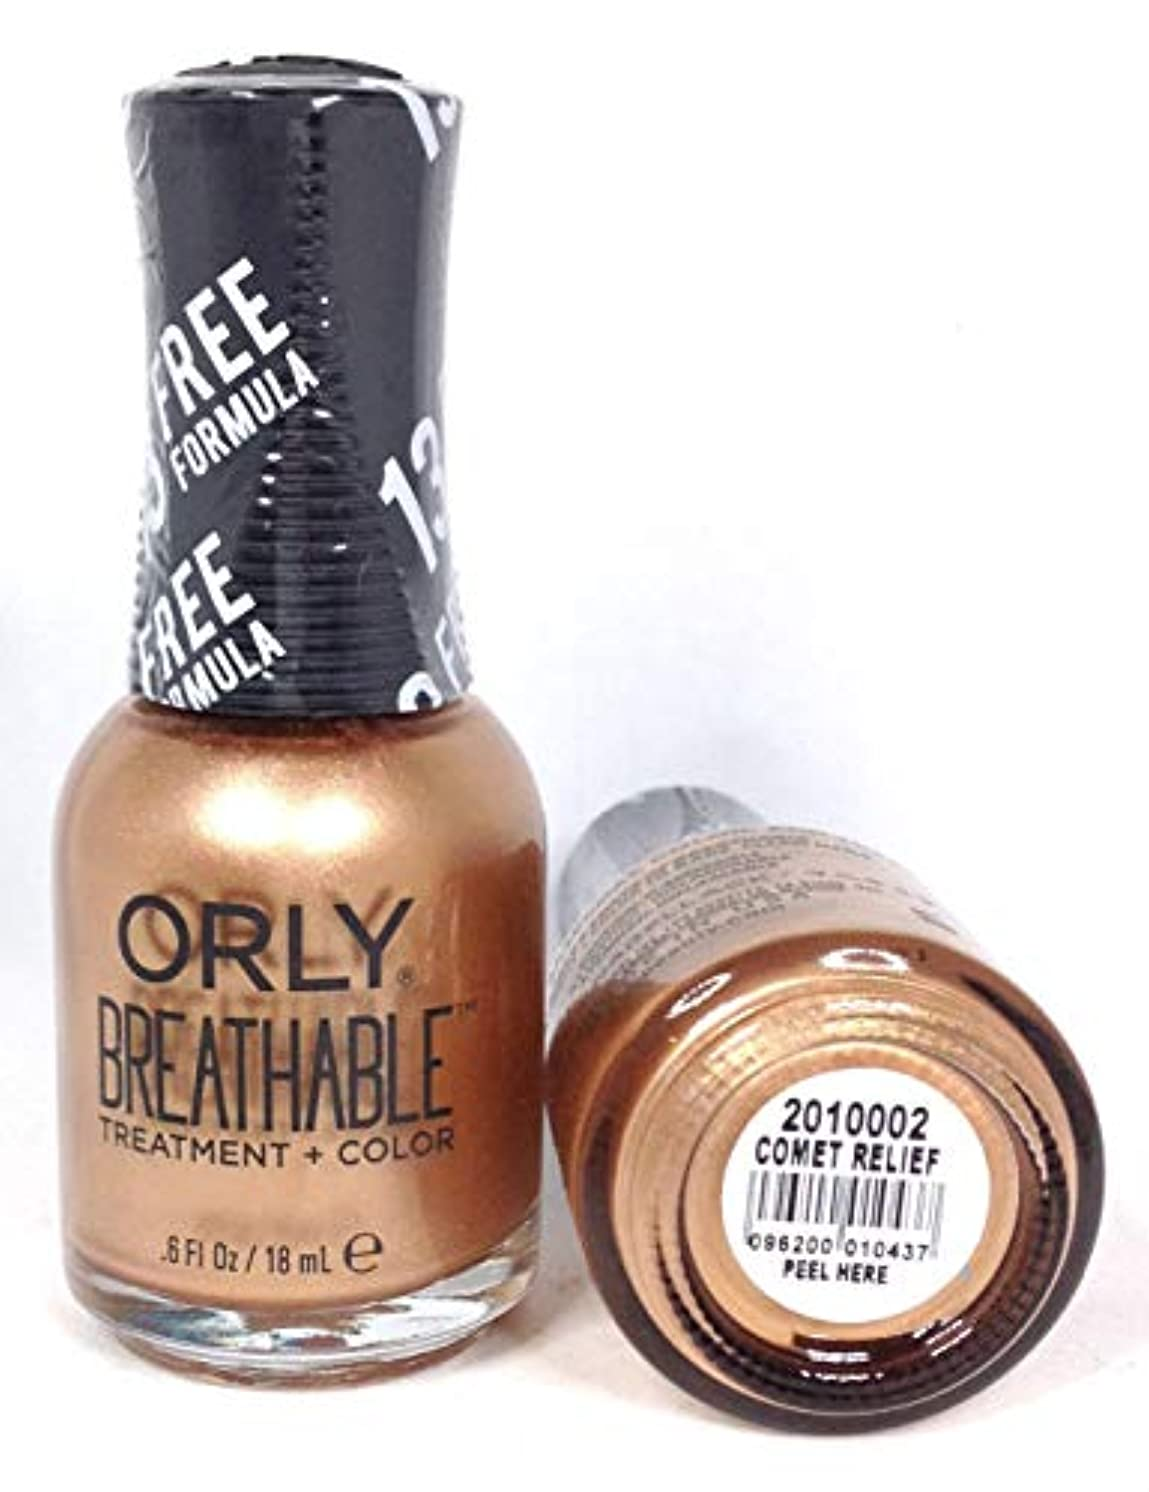 共同選択パキスタン人頑固なORLY Breathable Lacquer - Treatment+Color - Comet Relief - 18 mL / 0.6 oz